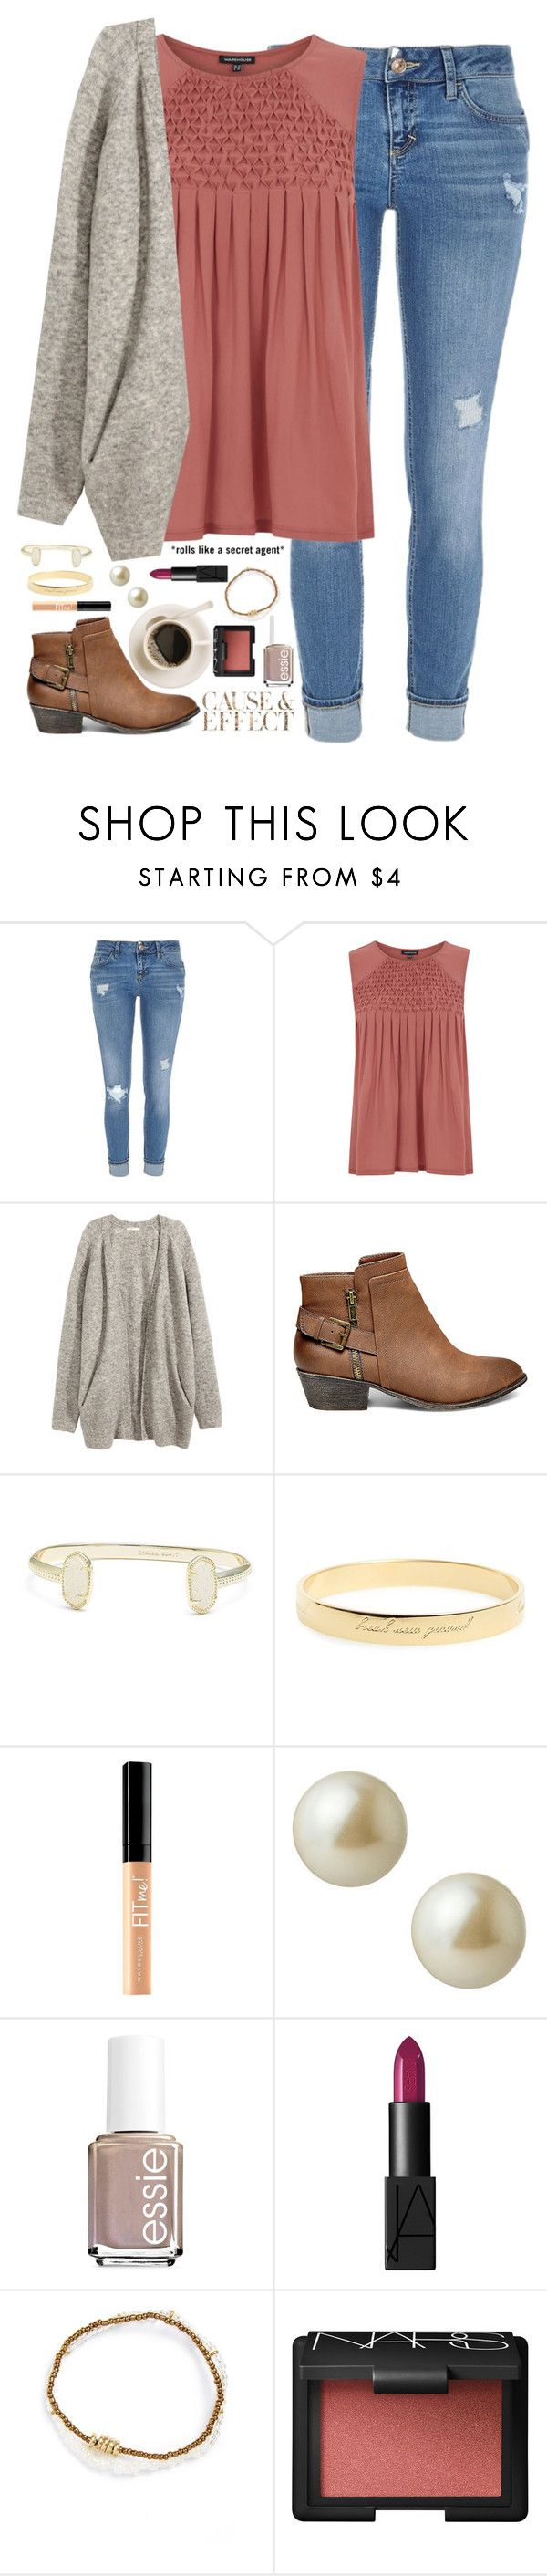 """""""I love that feeling I get when I hear your voice."""" by kaley-ii ❤ liked on Polyvore featuring River Island, Warehouse, H&M, Steve Madden, Kendra Scott, Kate Spade, Maybelline, Envi, Carolee and Essie"""